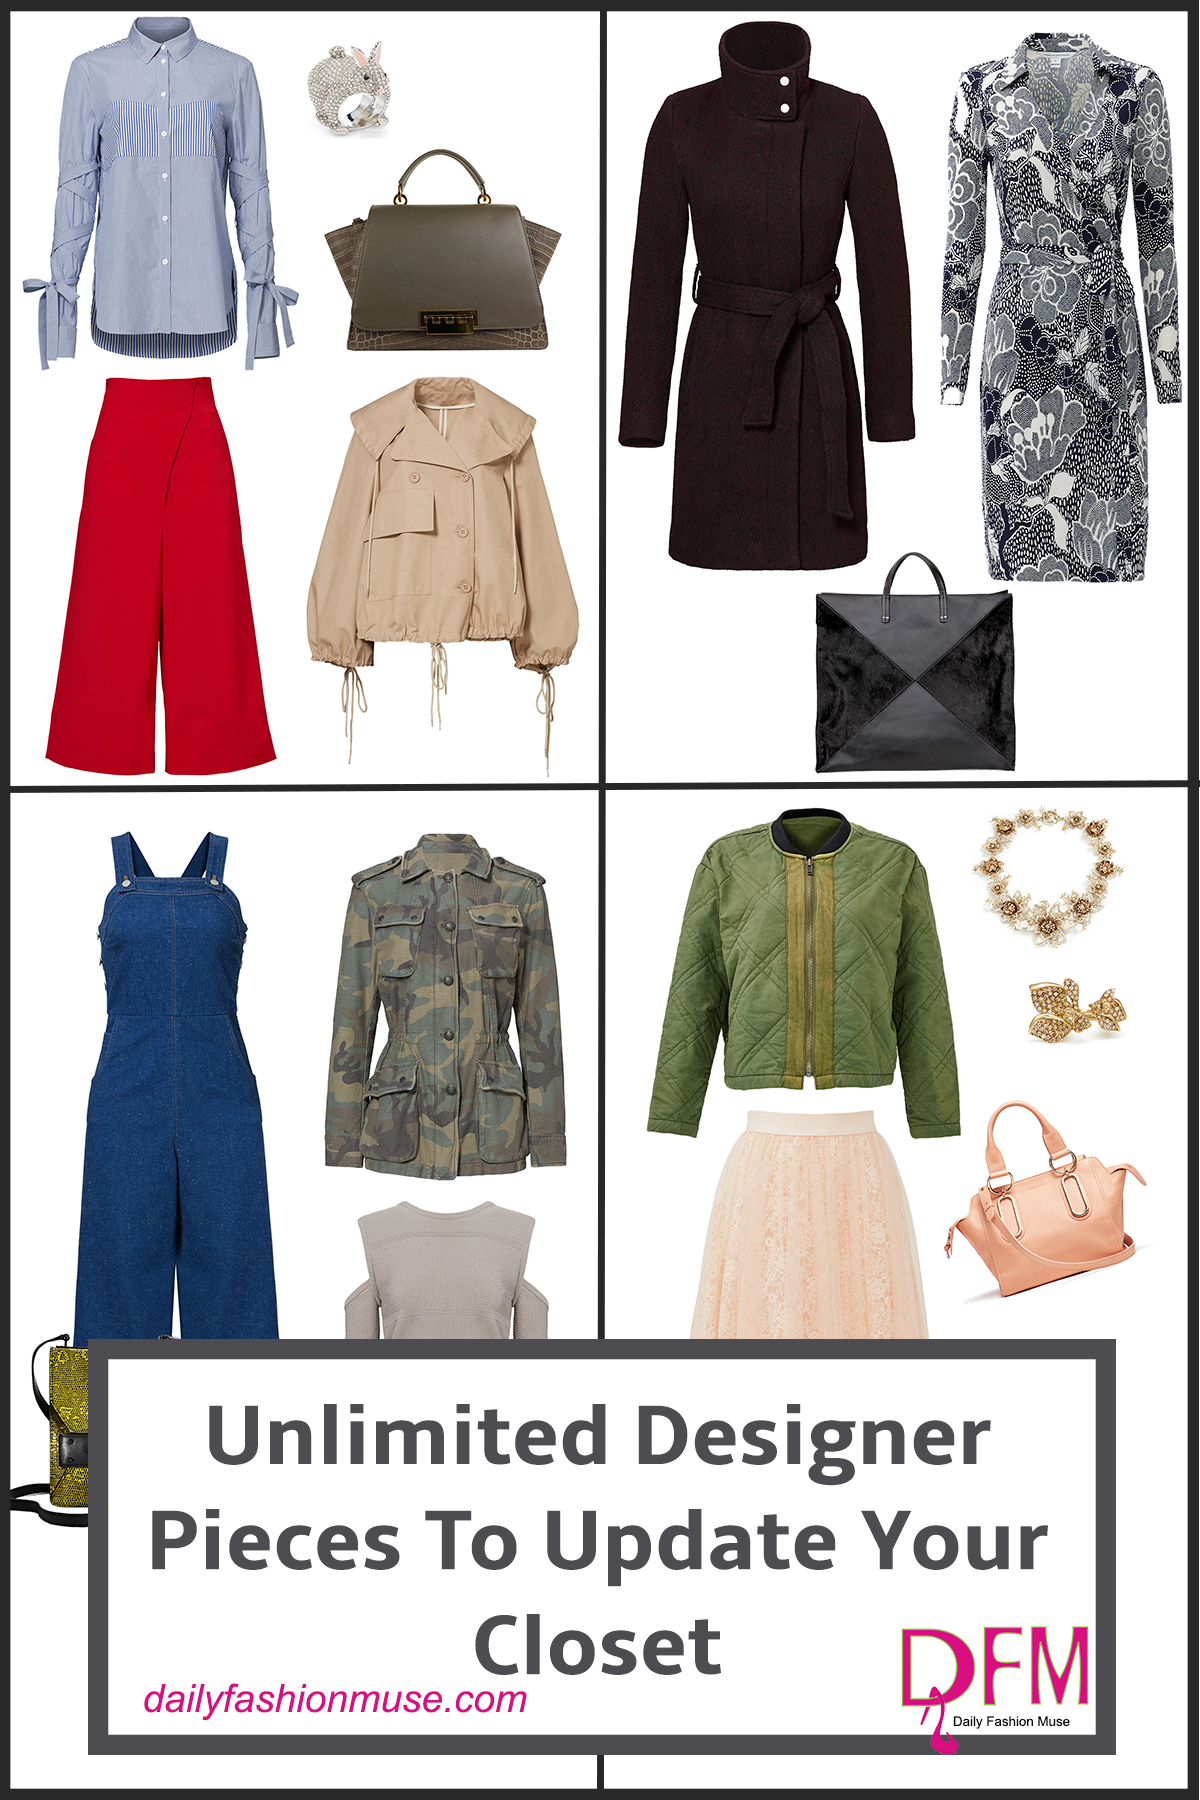 Do you dream of a closet of unlimited designer pieces? I just may have the answer to all of your wildest dreams. Click to find out how you can have it all.